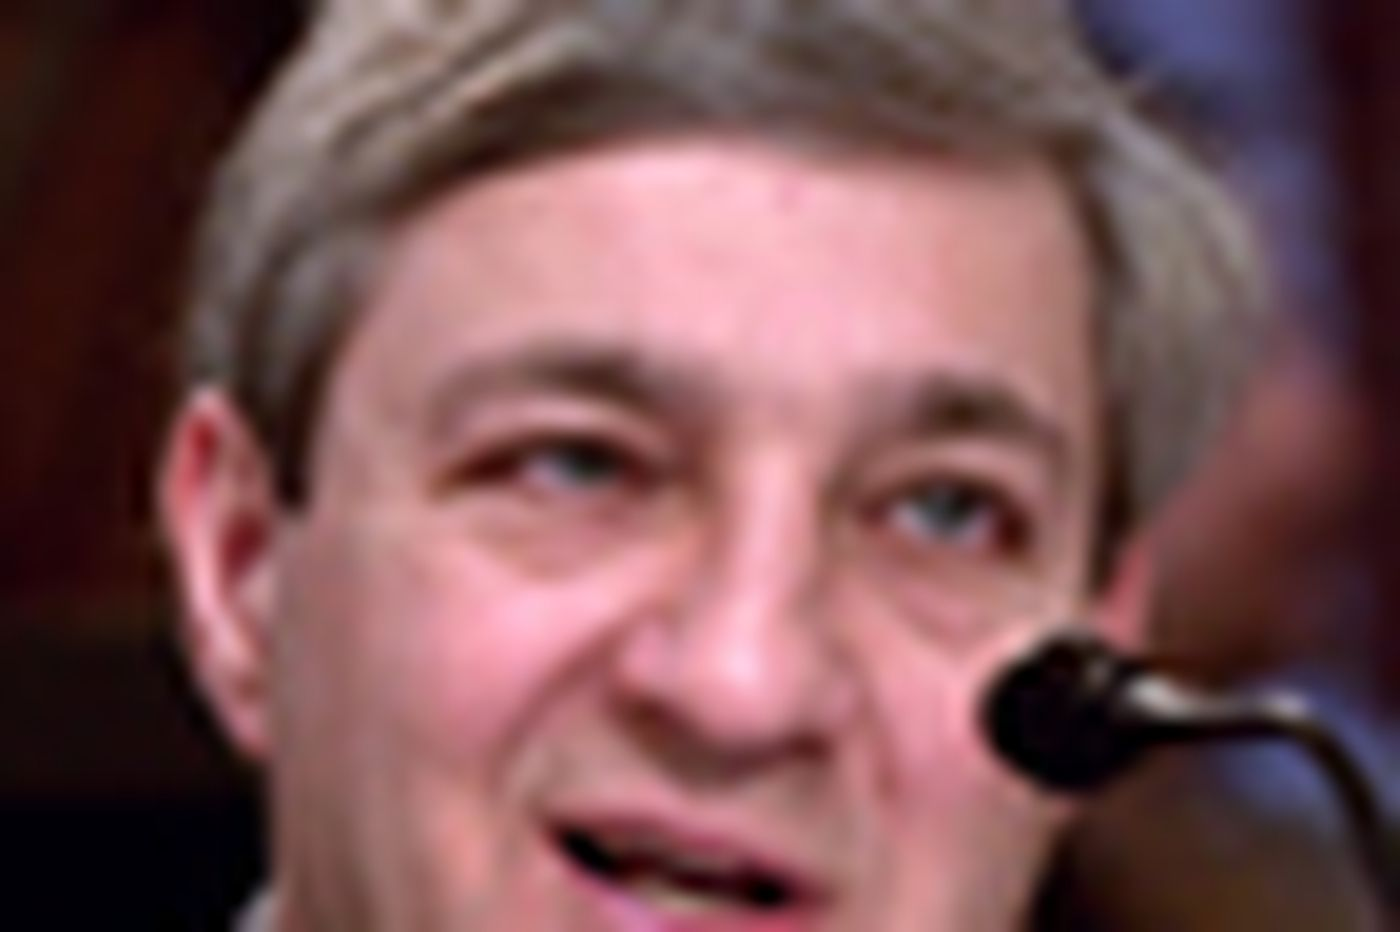 Graham Spanier may face charges over e-mails about Sandusky